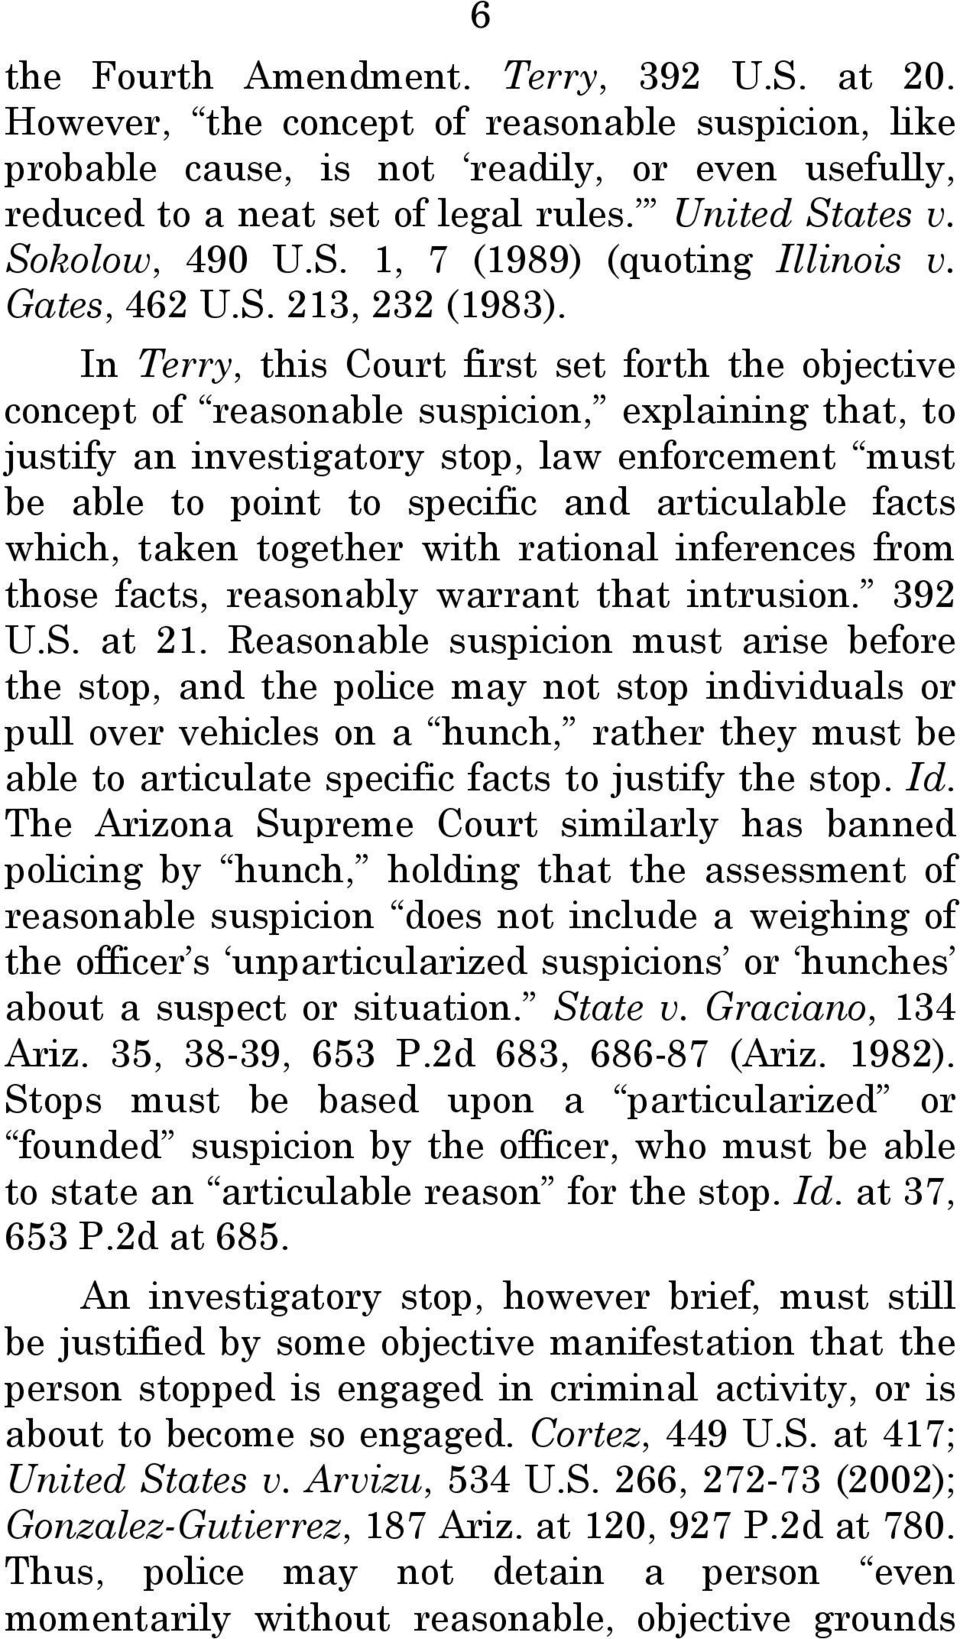 In Terry, this Court first set forth the objective concept of reasonable suspicion, explaining that, to justify an investigatory stop, law enforcement must be able to point to specific and